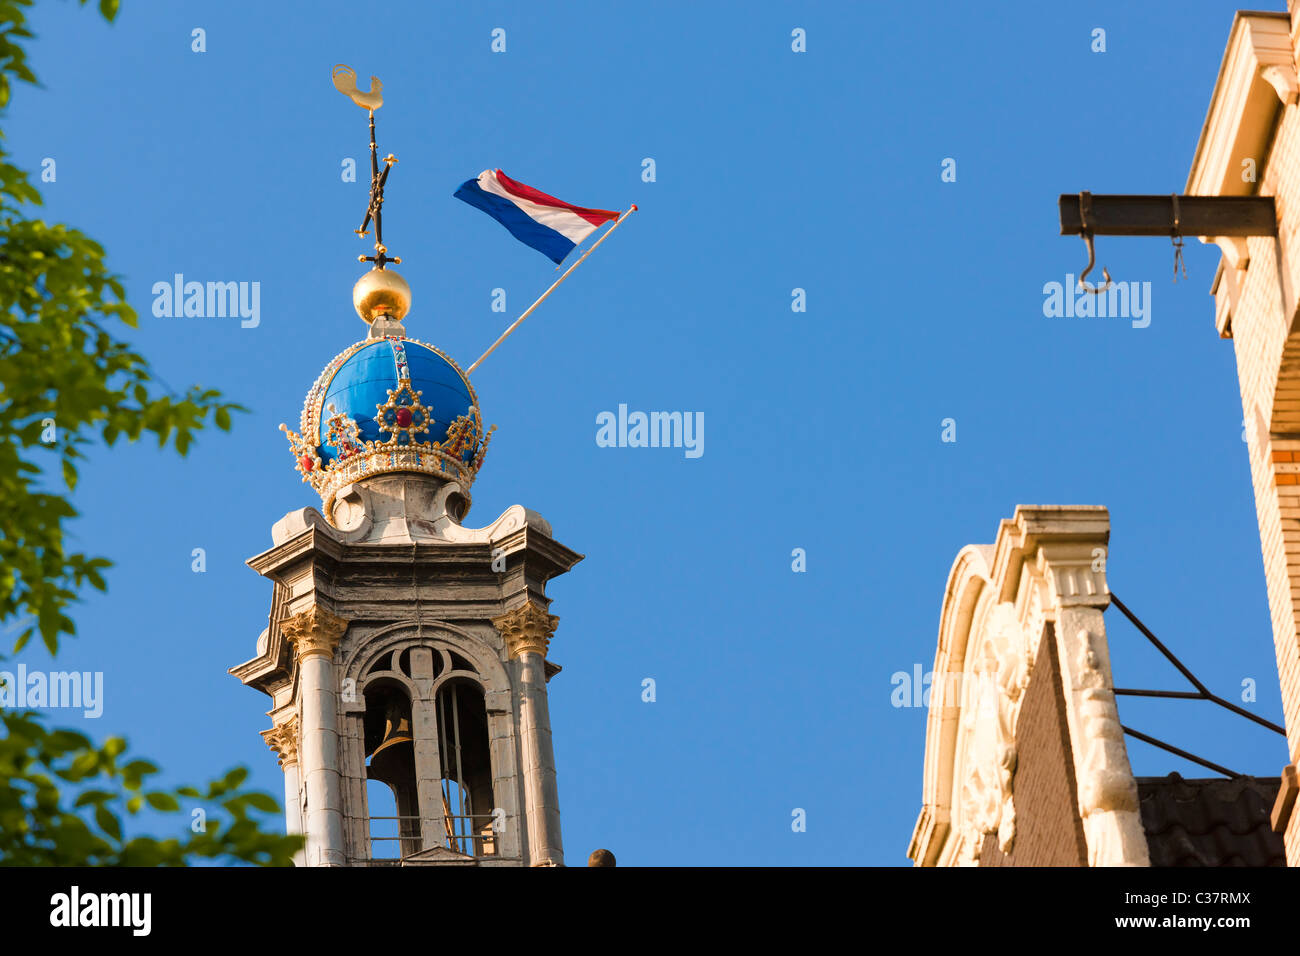 Amsterdam Westertoren, Westchurch West Western Church Tower, icon and symbol for the city. Imperial Crown and flag - Stock Image